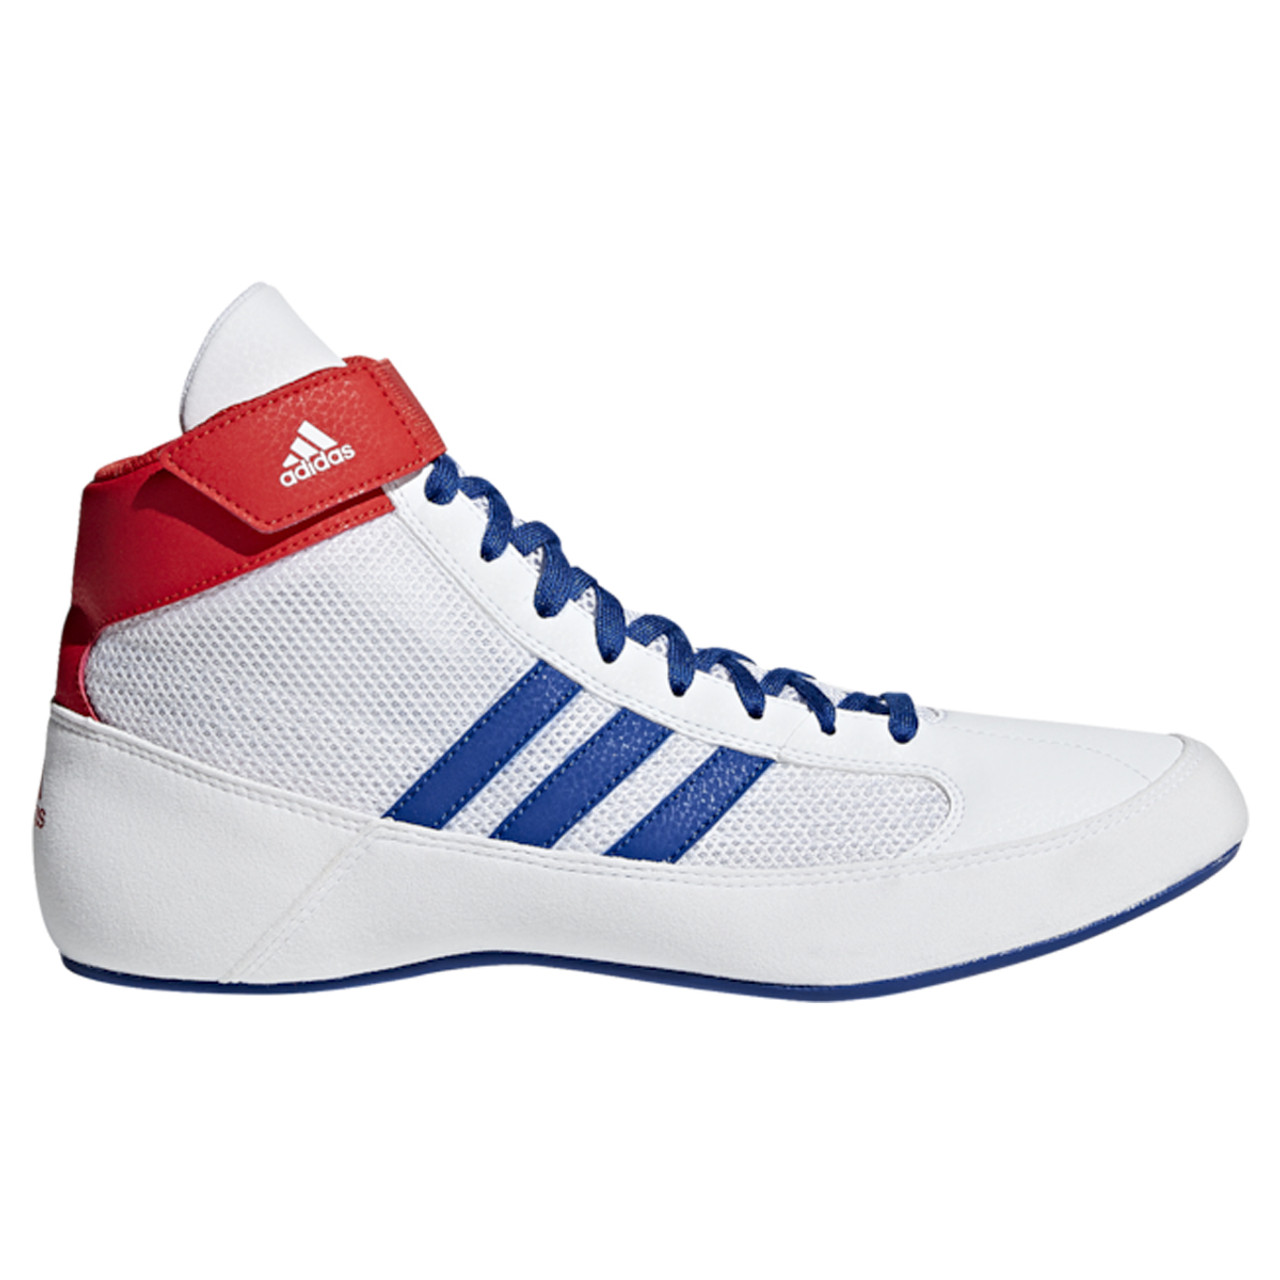 Adidas HVC 2 Adult Wrestling Shoes BD7129 White, Red, Blue